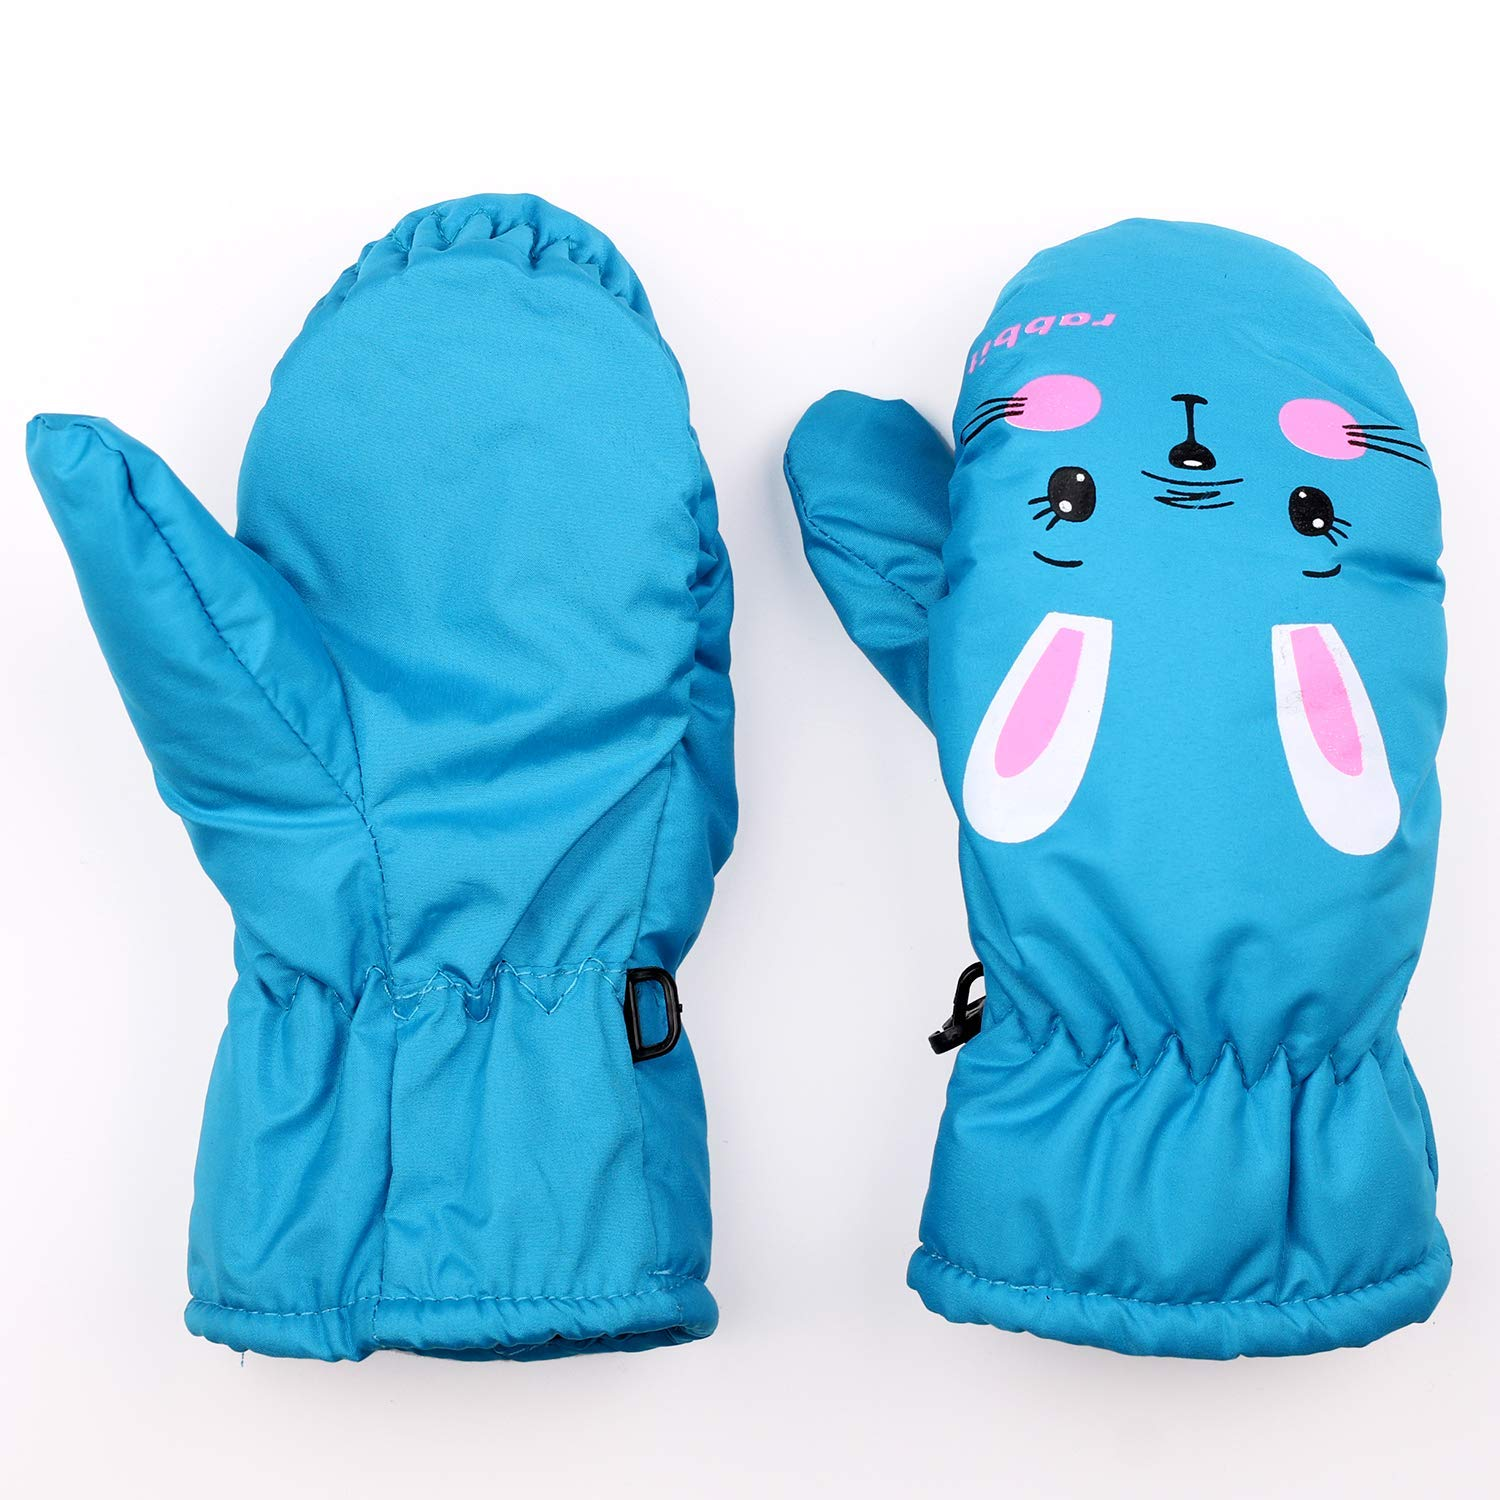 Eshall Kids Ski Gloves Windproof Snowproof Winter Warm Mittens for Boys Girls